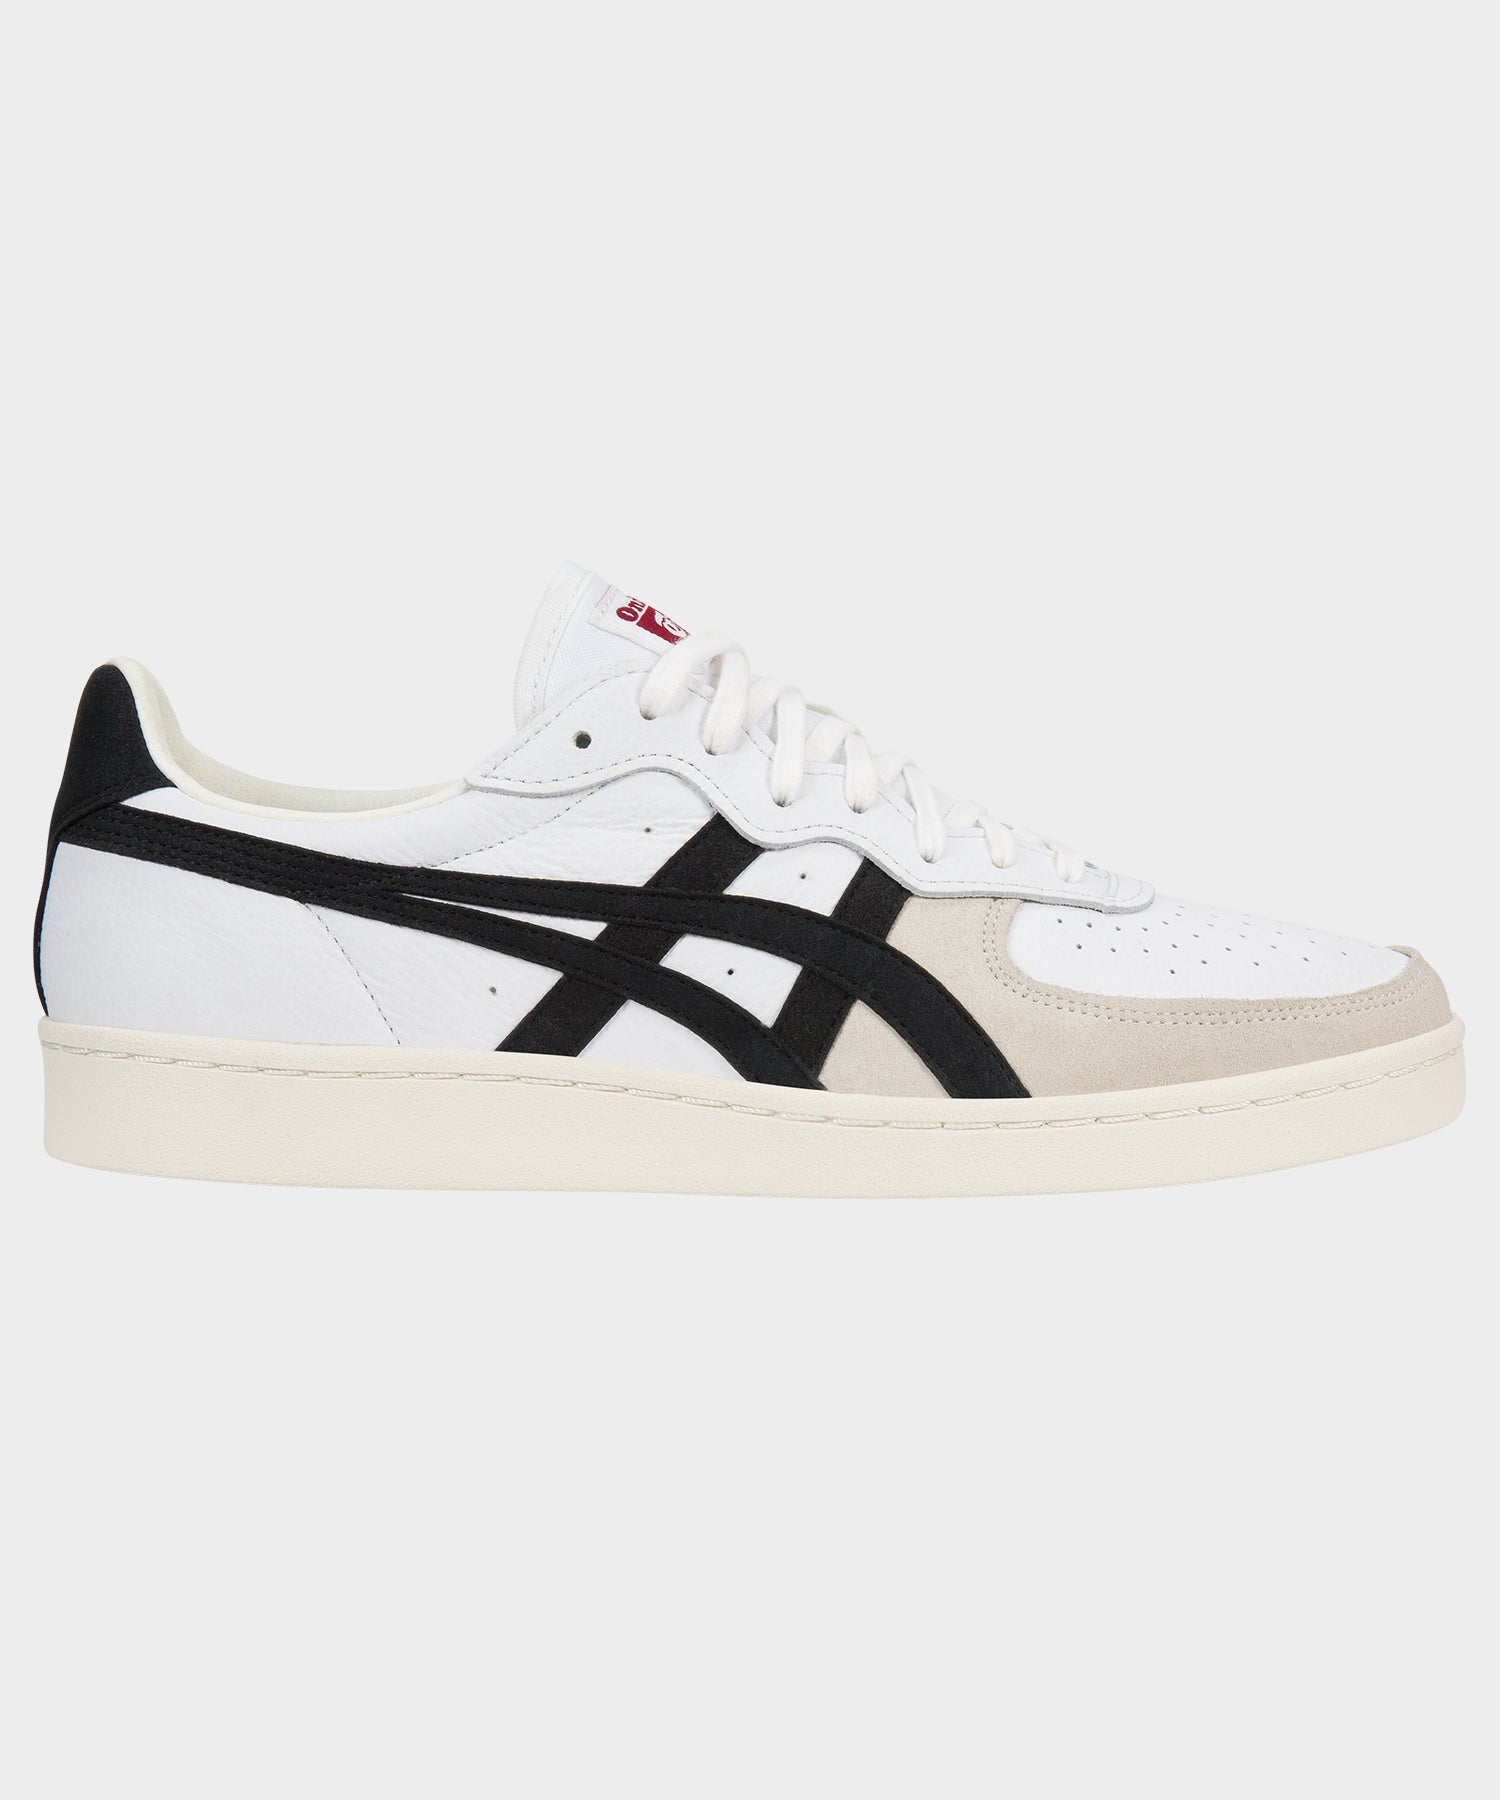 Onitsuka Tiger GSM in White/Black